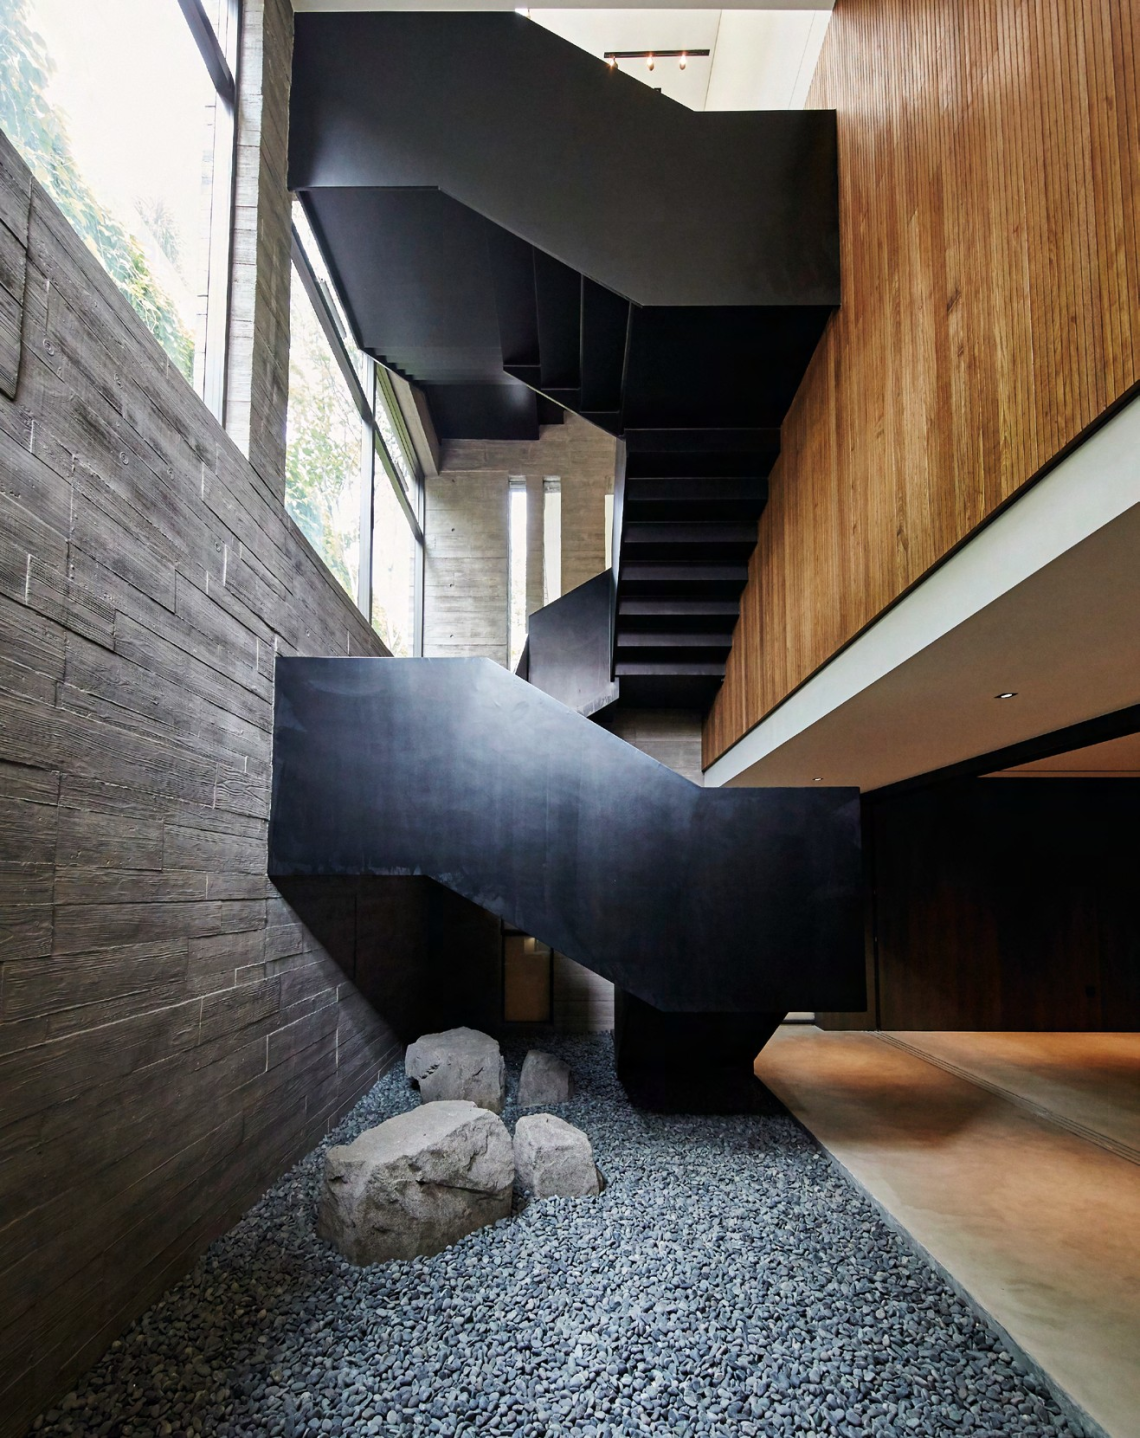 A staircase